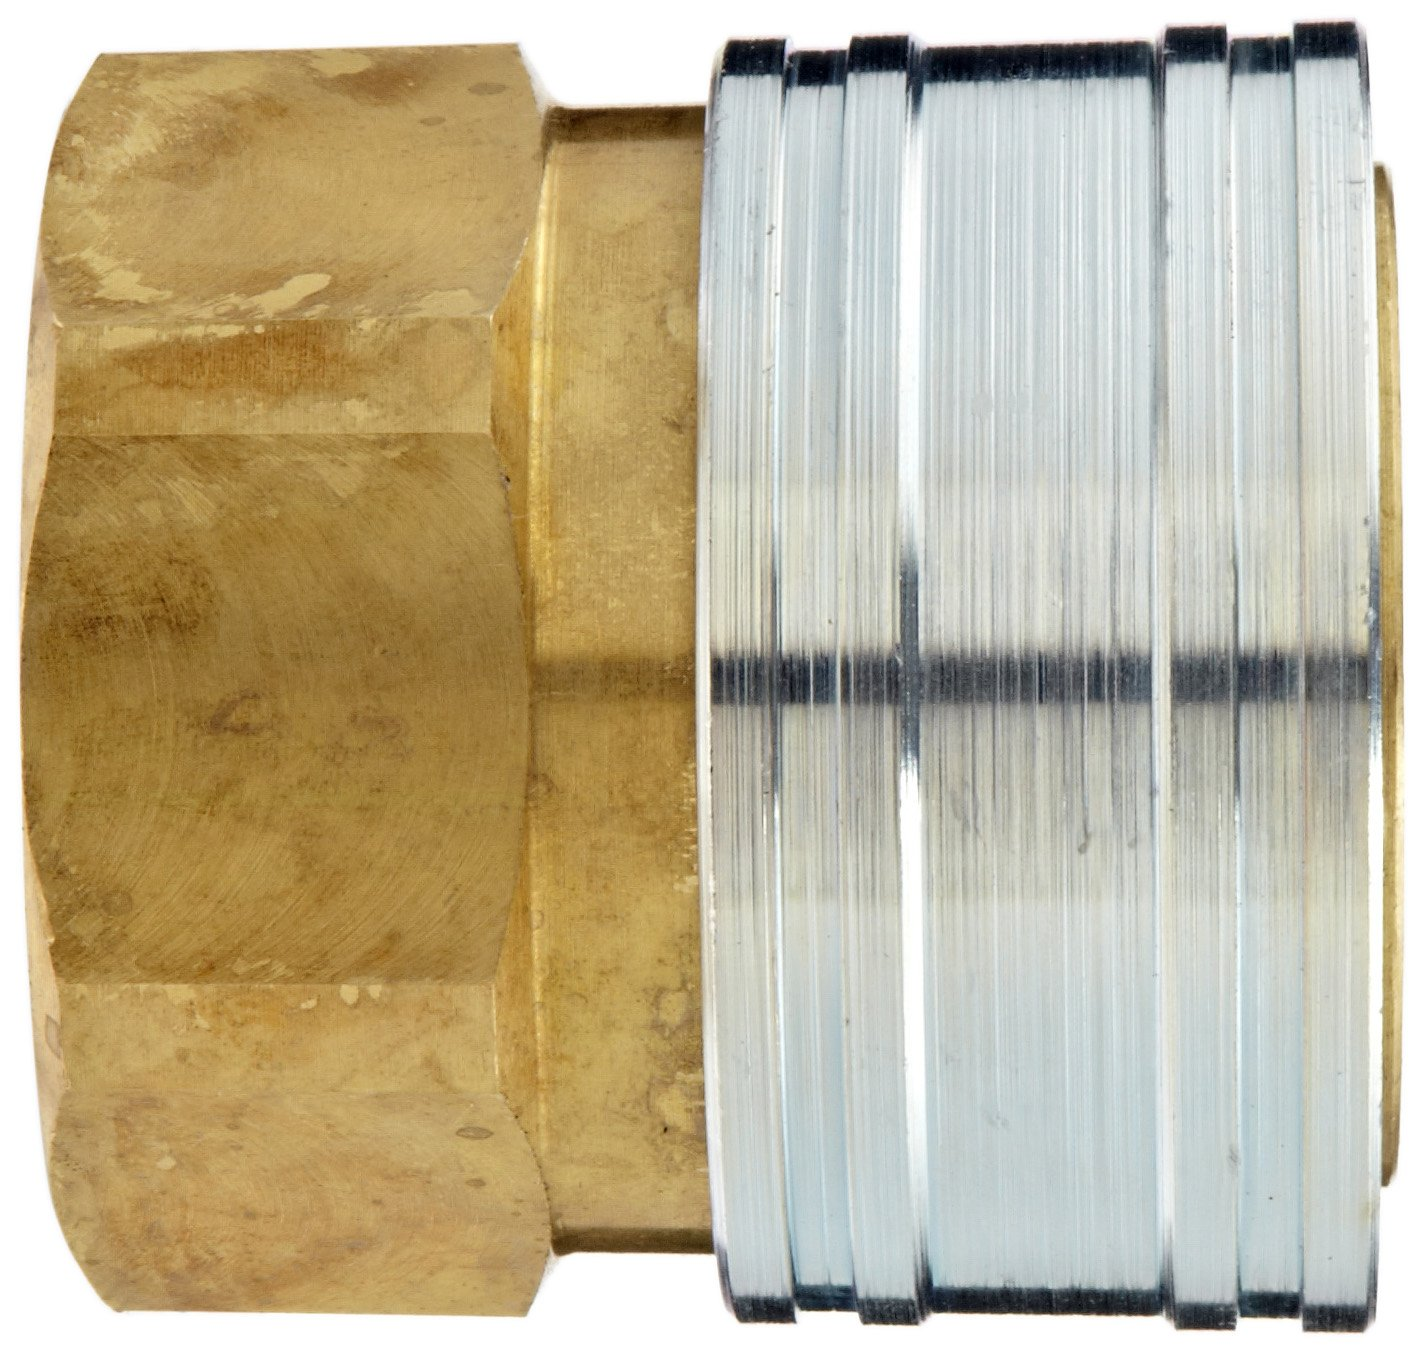 Dixon STFC10 Brass Hydraulic Quick-Connect Fitting, 1-1/4'' Female Coupling x 1-1/4''-11-1/2 NPTF Female by Dixon Valve & Coupling (Image #2)